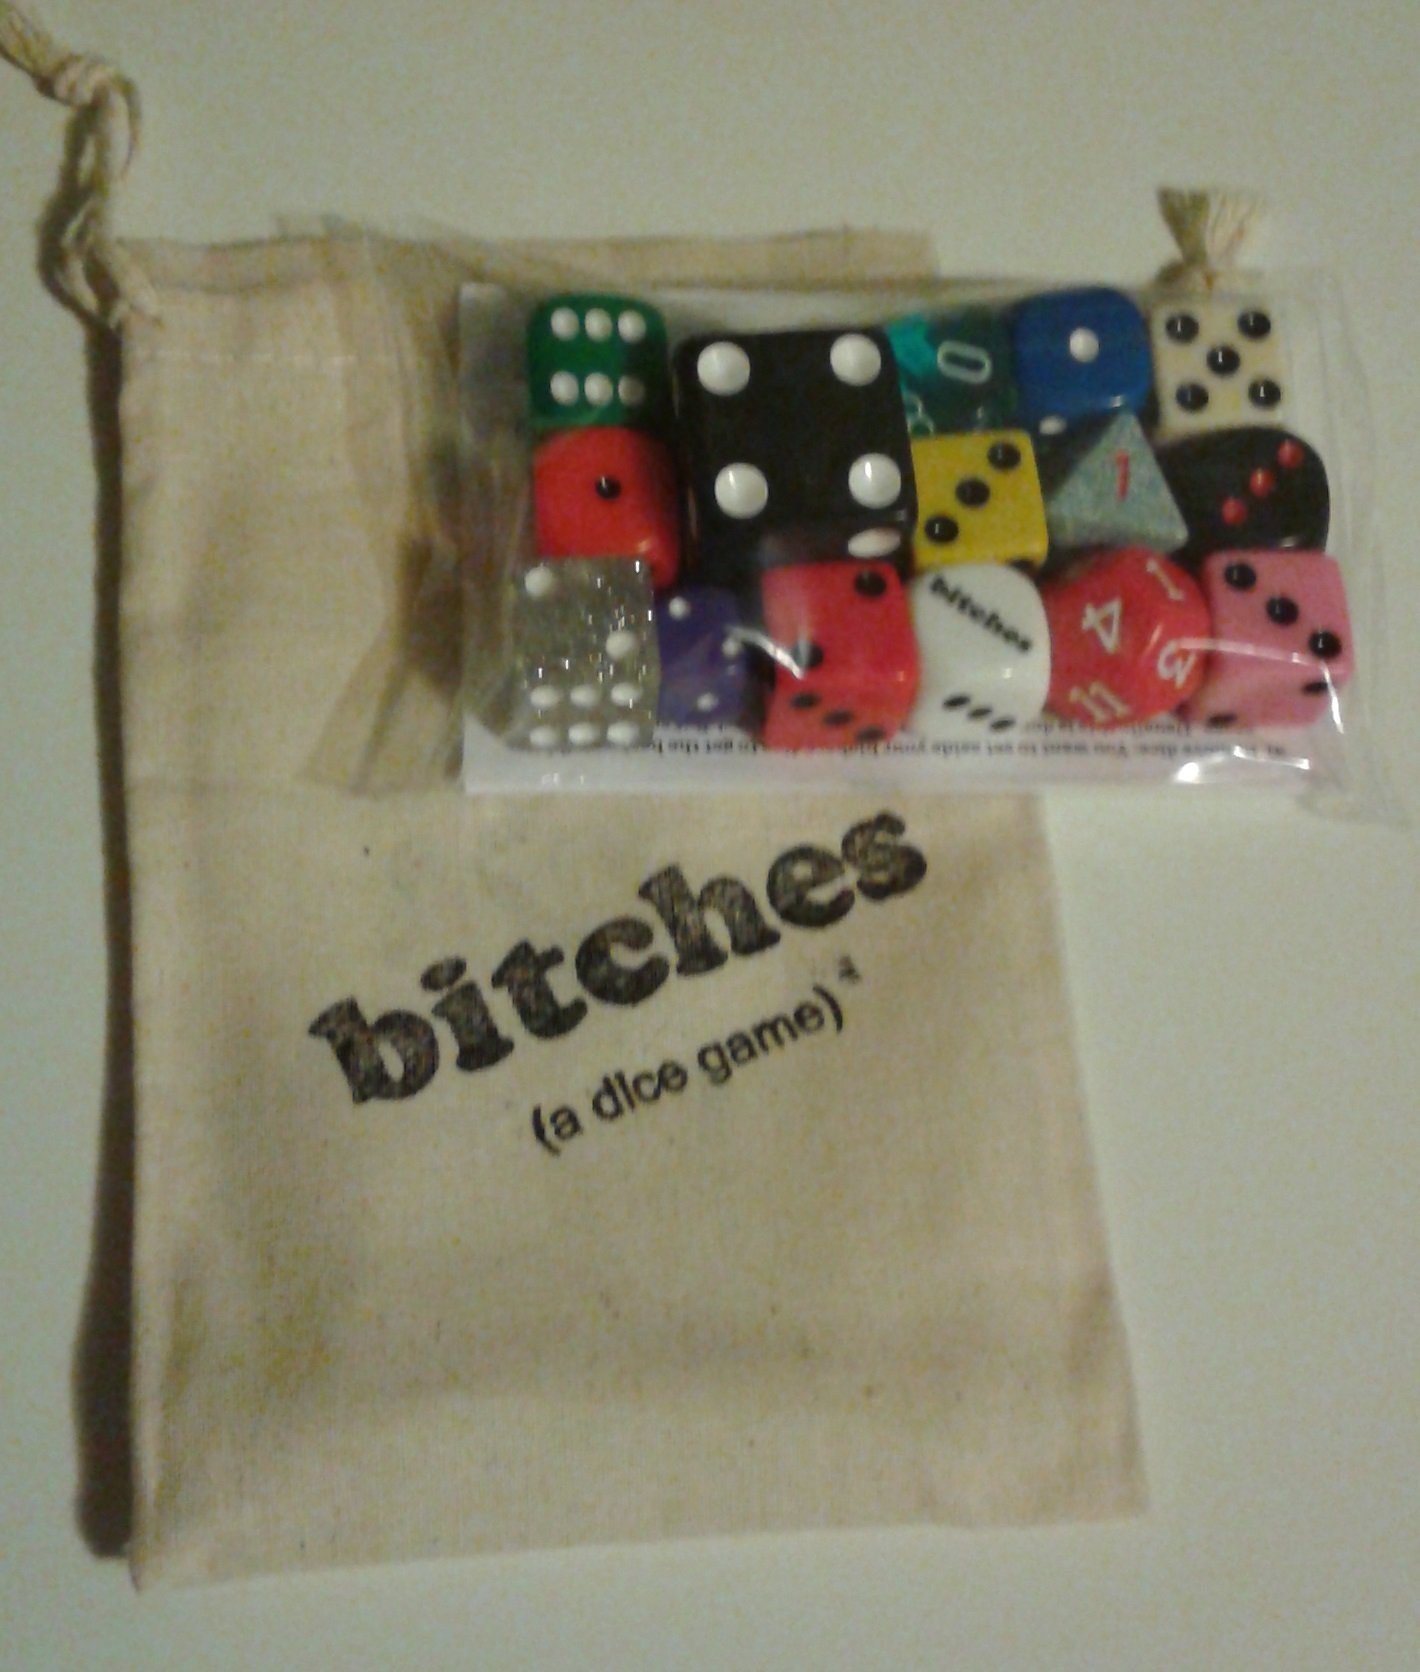 bitches (a dice game)